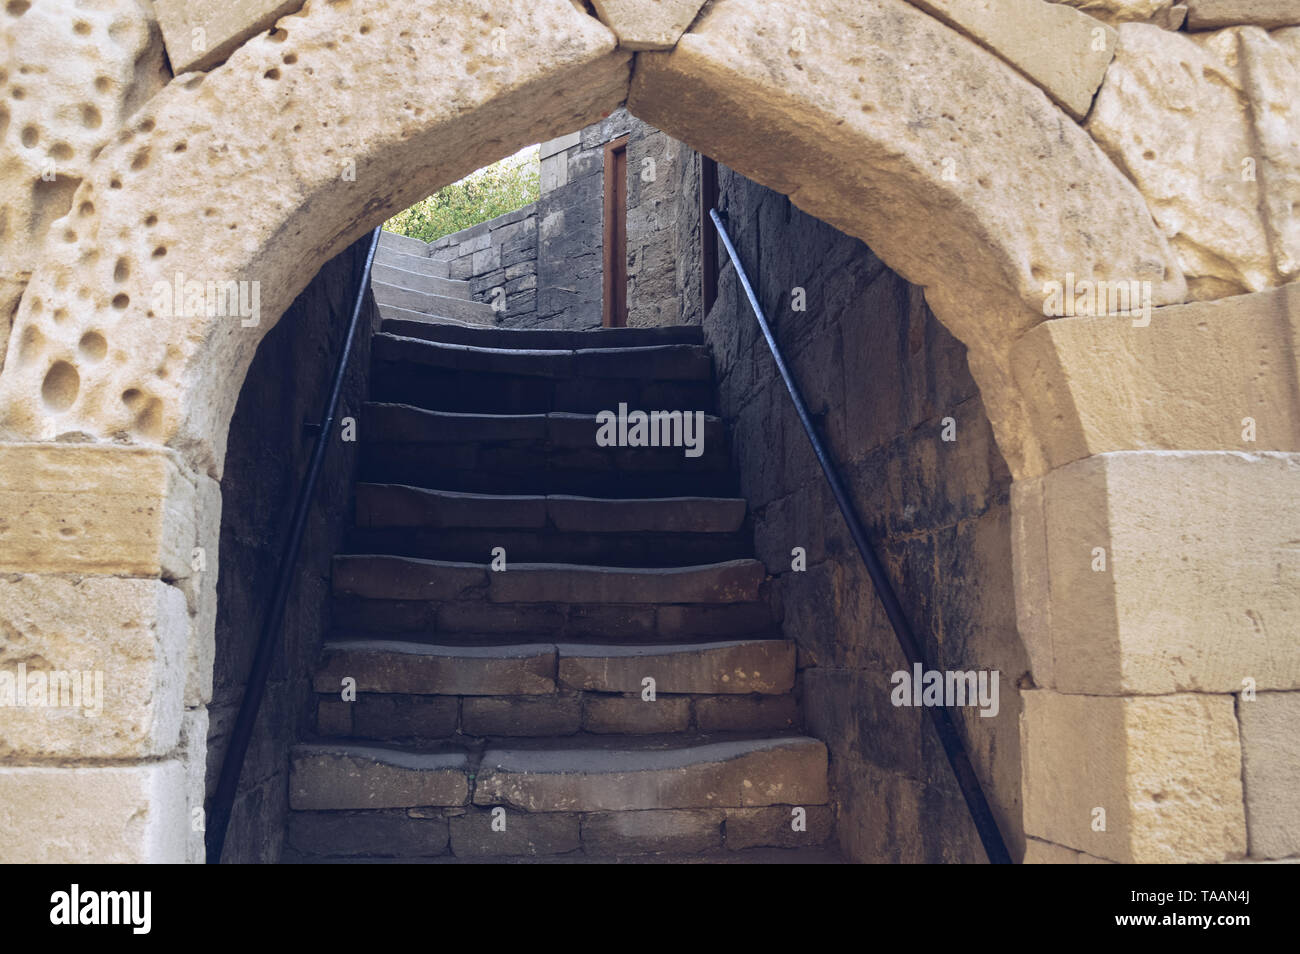 old staircase of shirvanshah palace with arch entrance - Stock Image